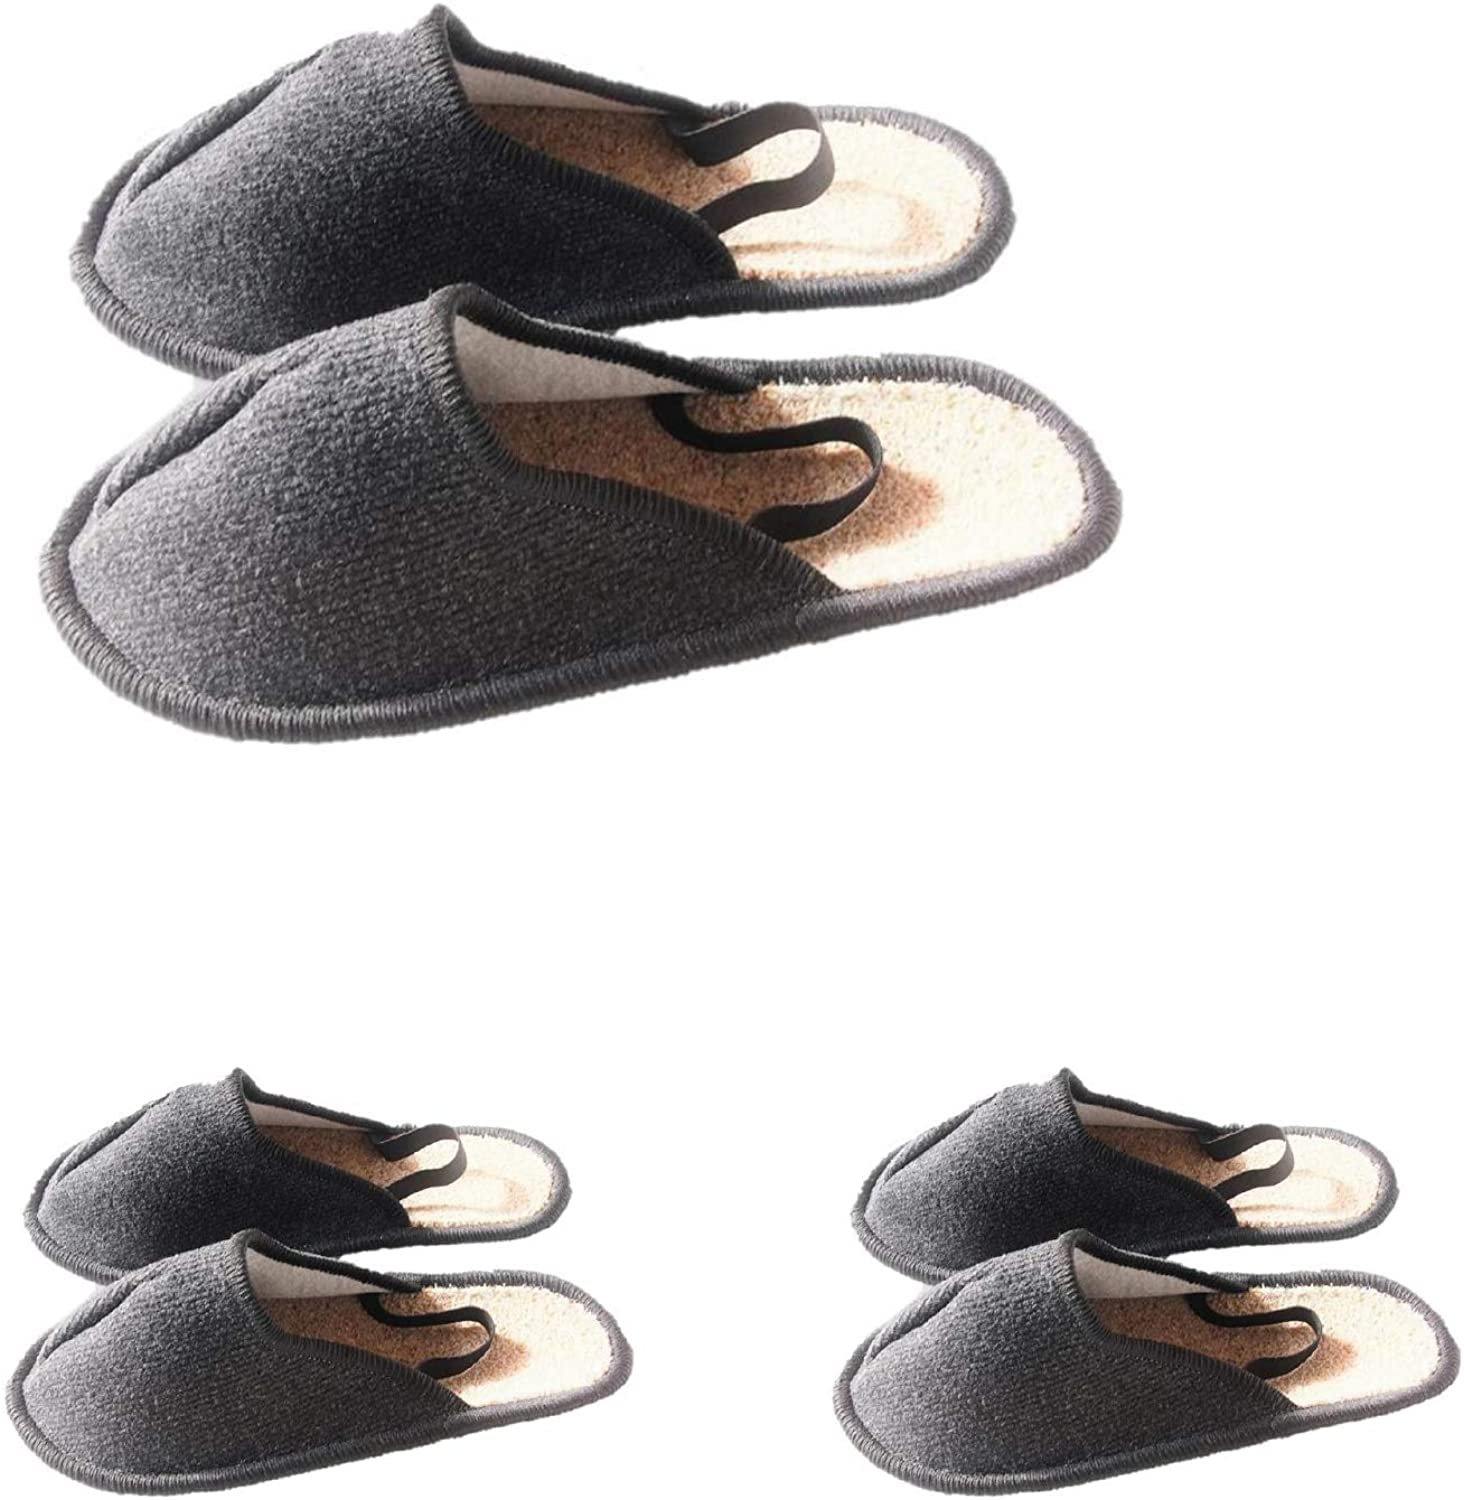 Professional Museum Slippers with Elastic Heel shoes Overshoes, 3 Pairs